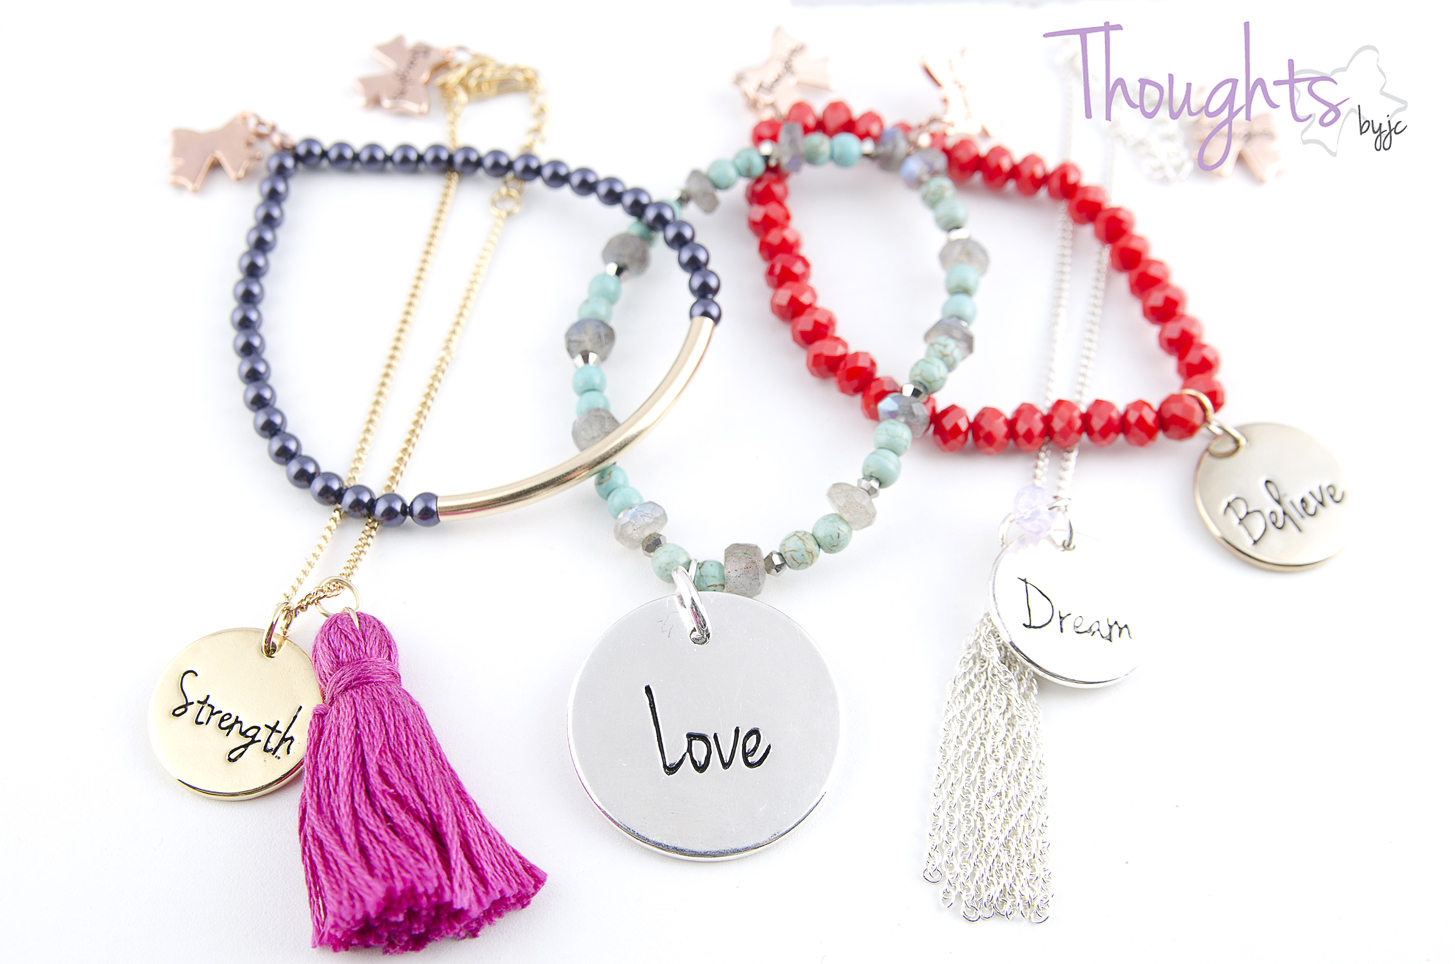 Set pulseras - Thoughts byjc